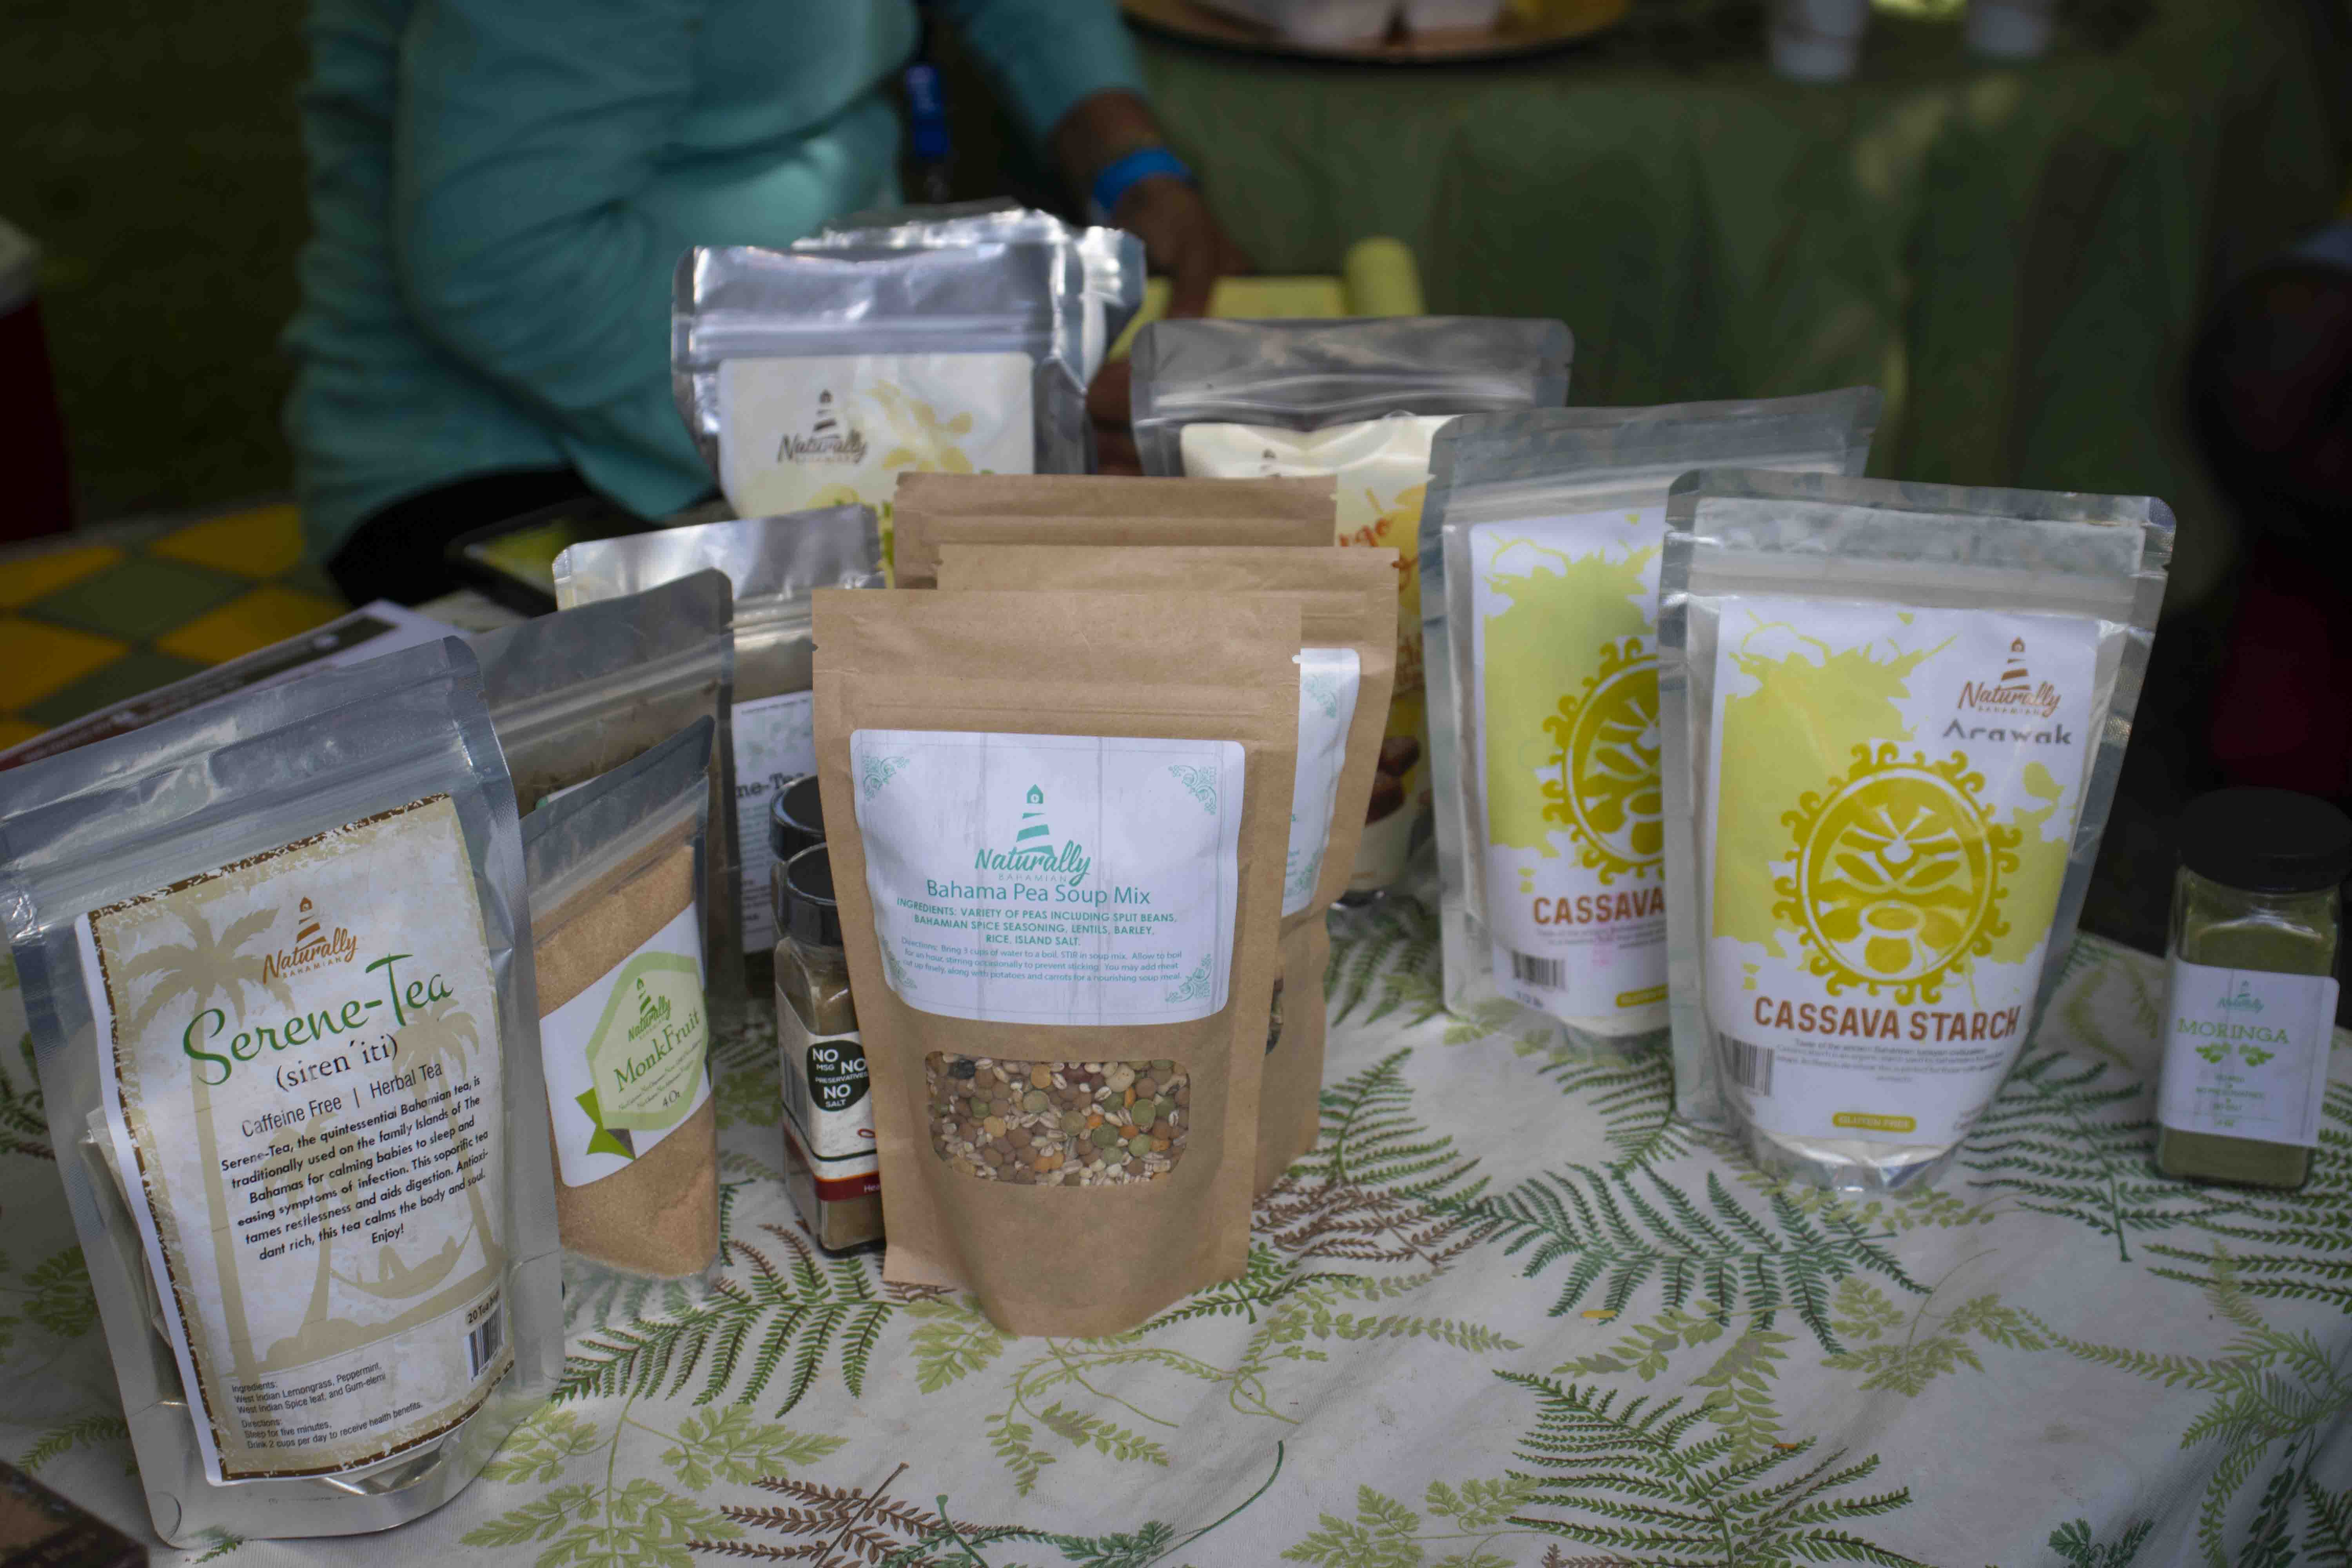 Naturally Bahamian products